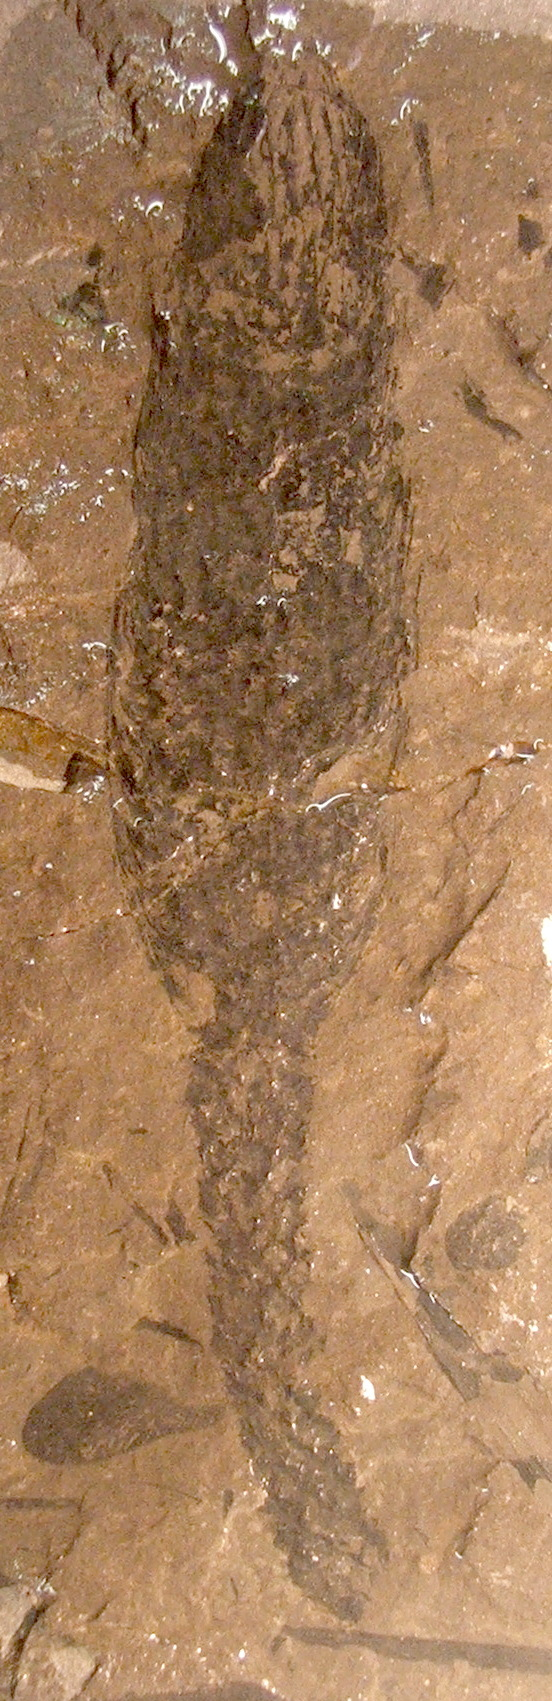 The fossilized strobilus of a Lepidodendron